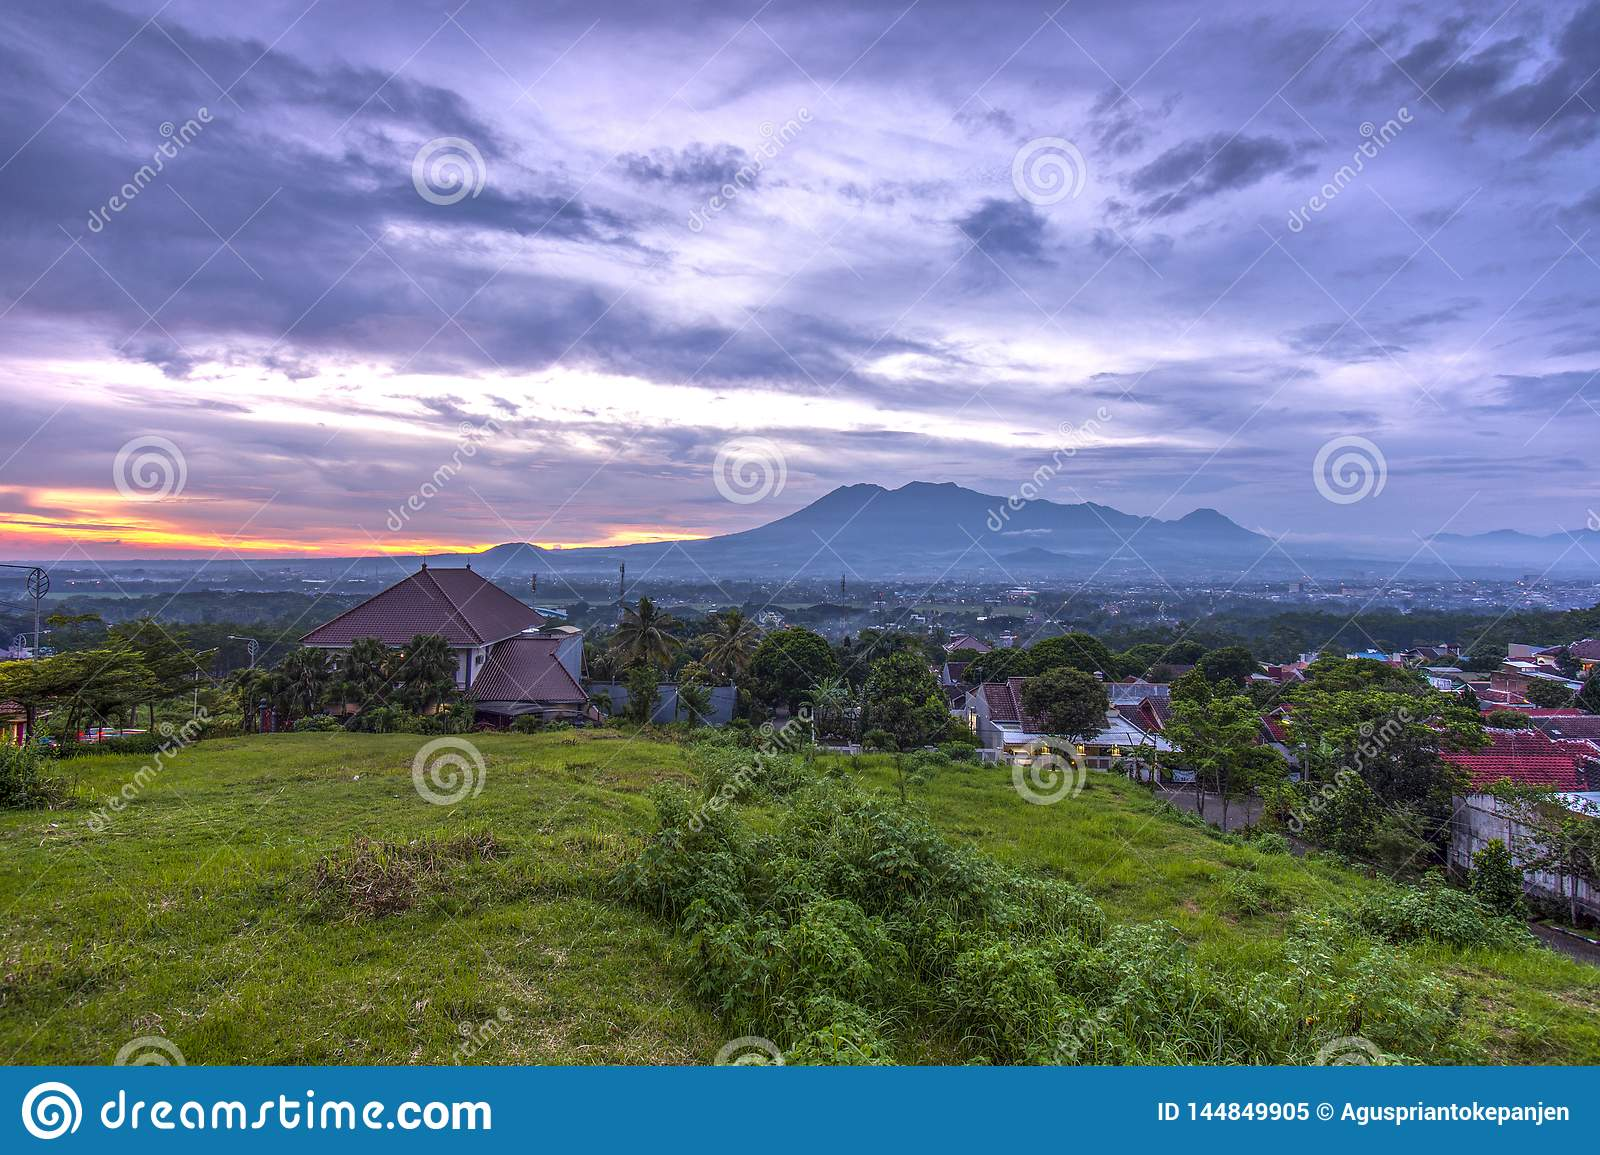 Sunset With Views Of Malang Java City Of Indonesia Stock Image Image Of Freshness Indonesia 144849905